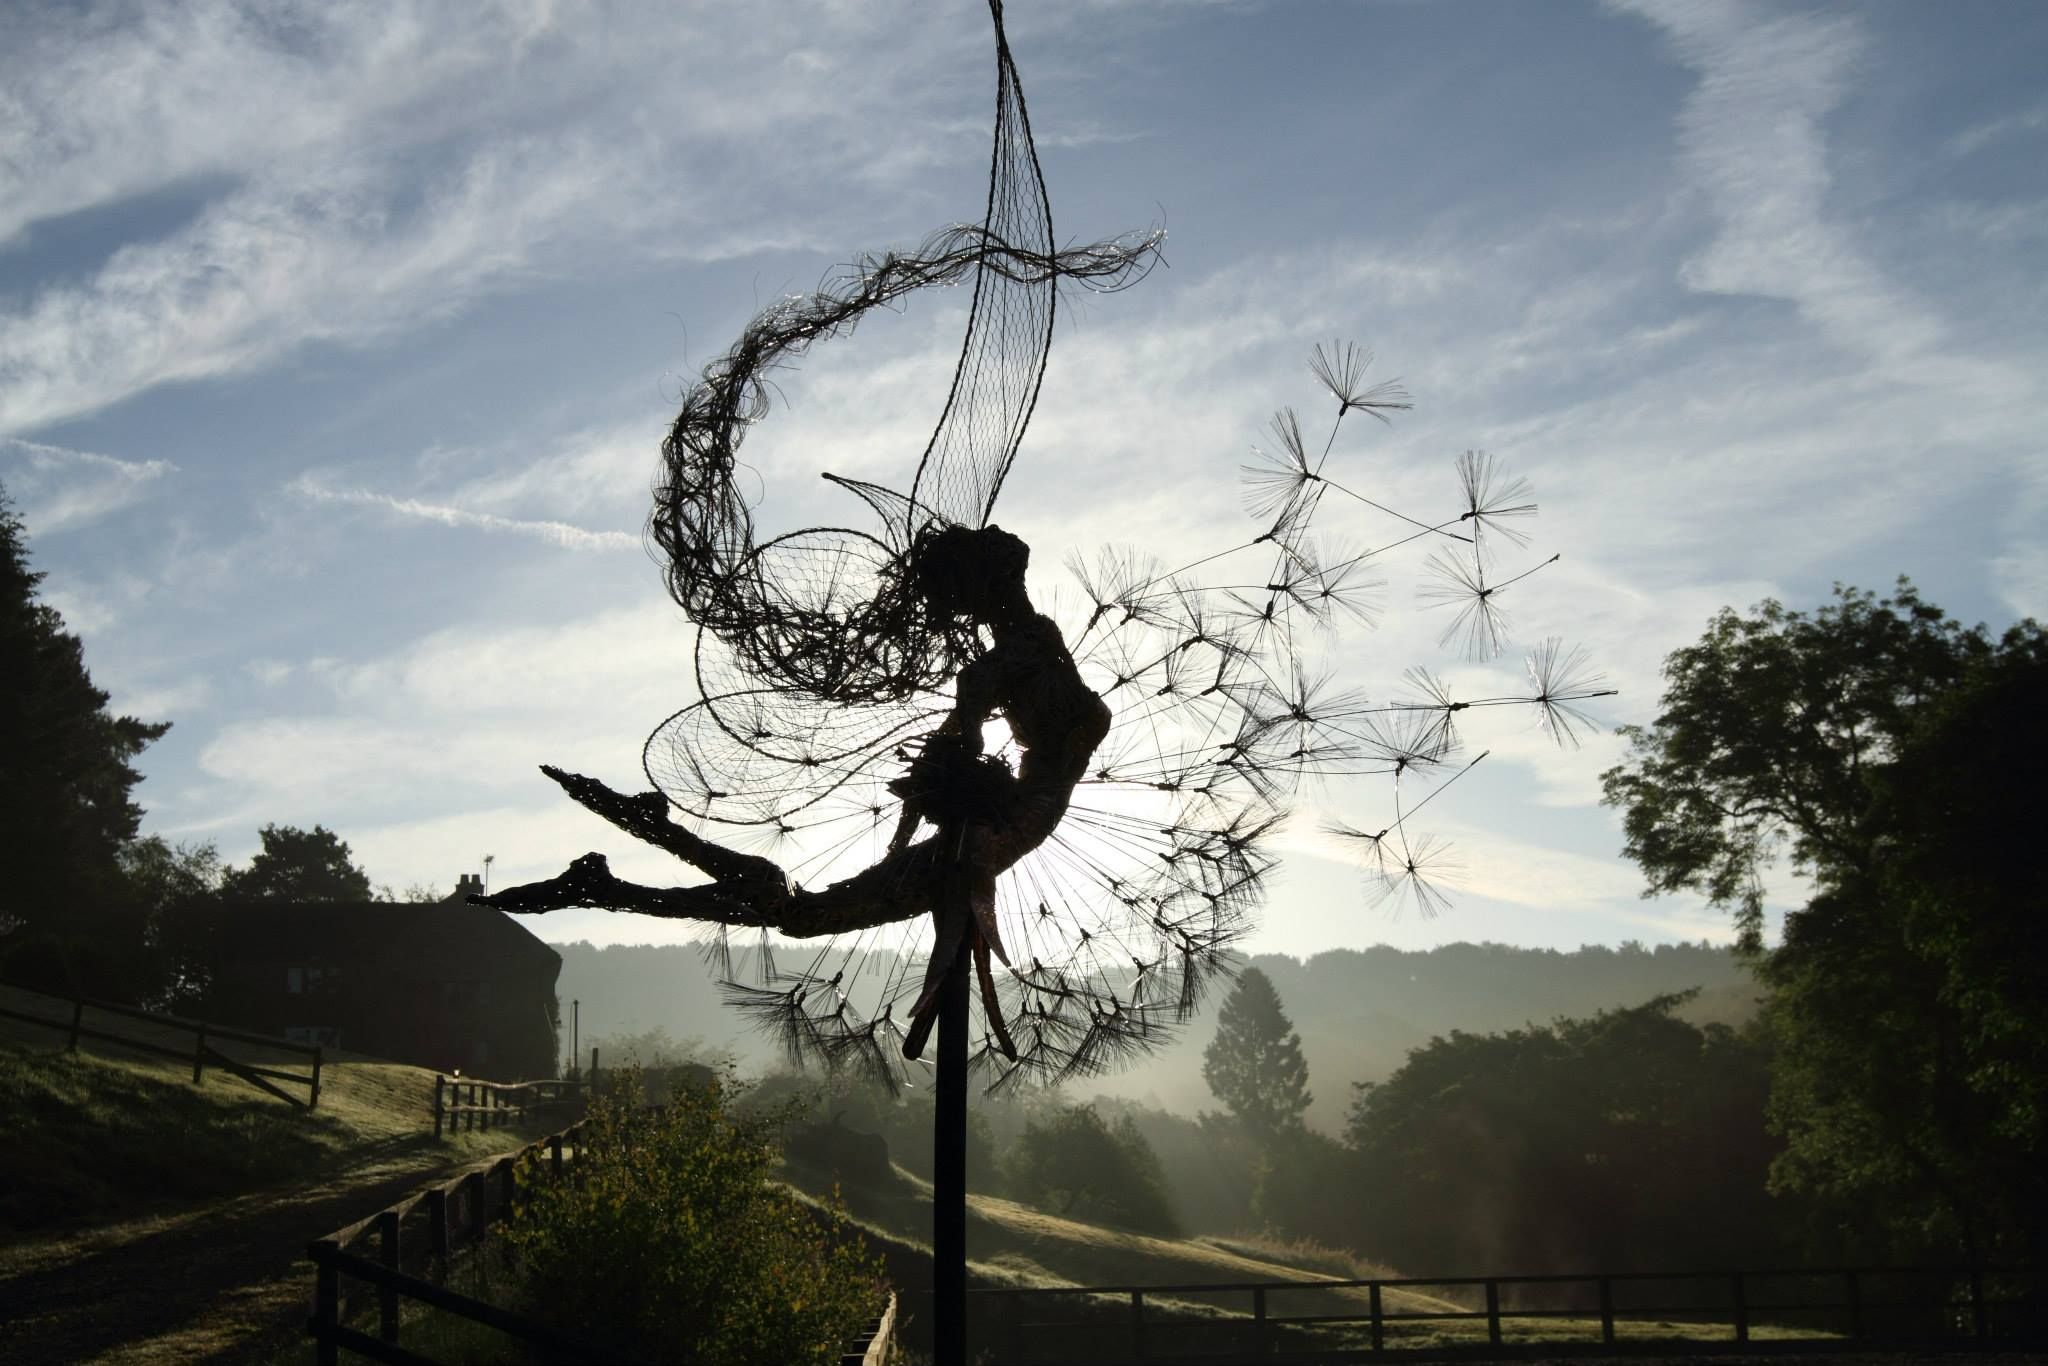 Pin by Margery Messing on Wire fairies | Pinterest | Copper wire art ...